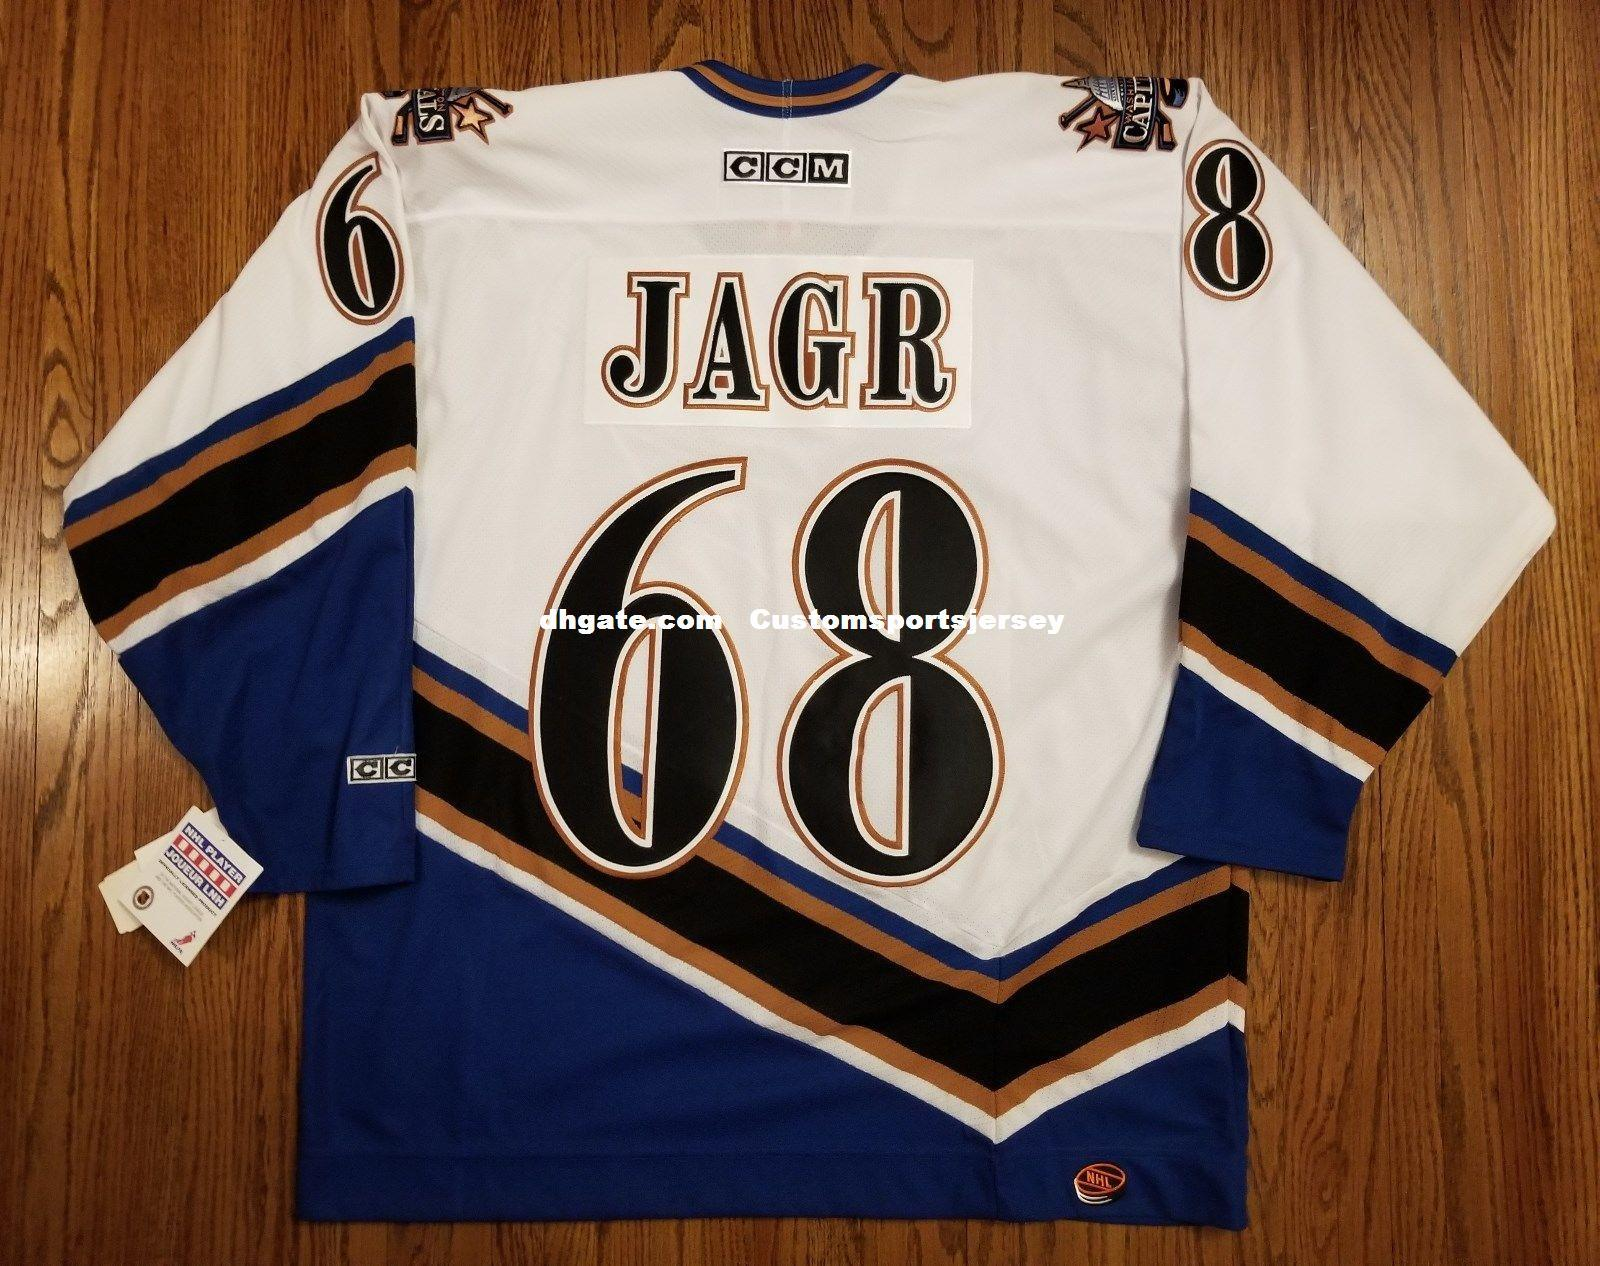 2019 Cheap Custom Jaromir Jagr Vintage Washington Capitals CCM Jersey  Screaming Eagle Mens Personalized Any Name Number Stitching Jerseys XS 6XL  From ... 670c87884a4